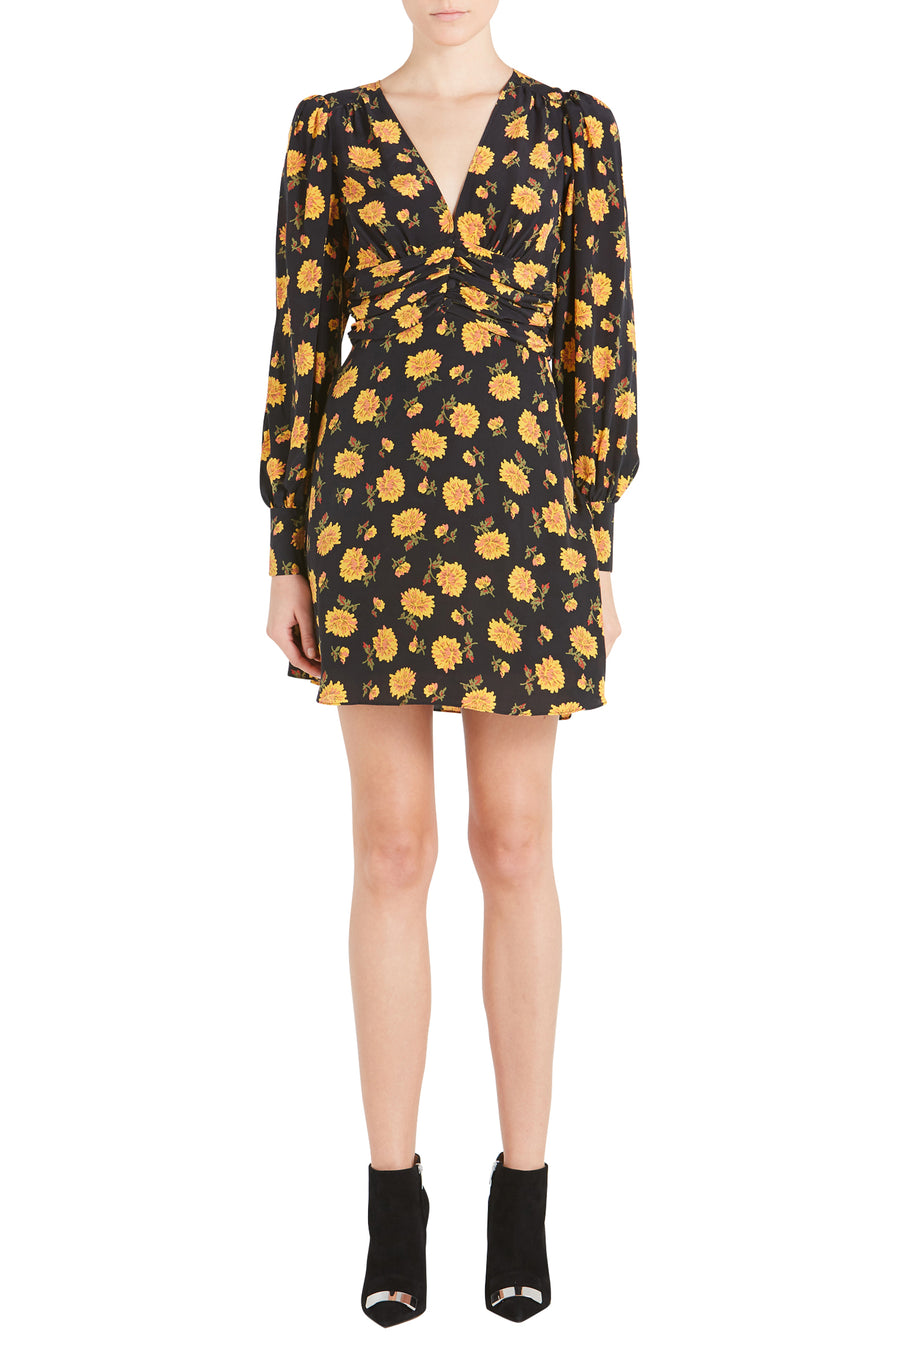 MARION PRINTED MINI DRESS